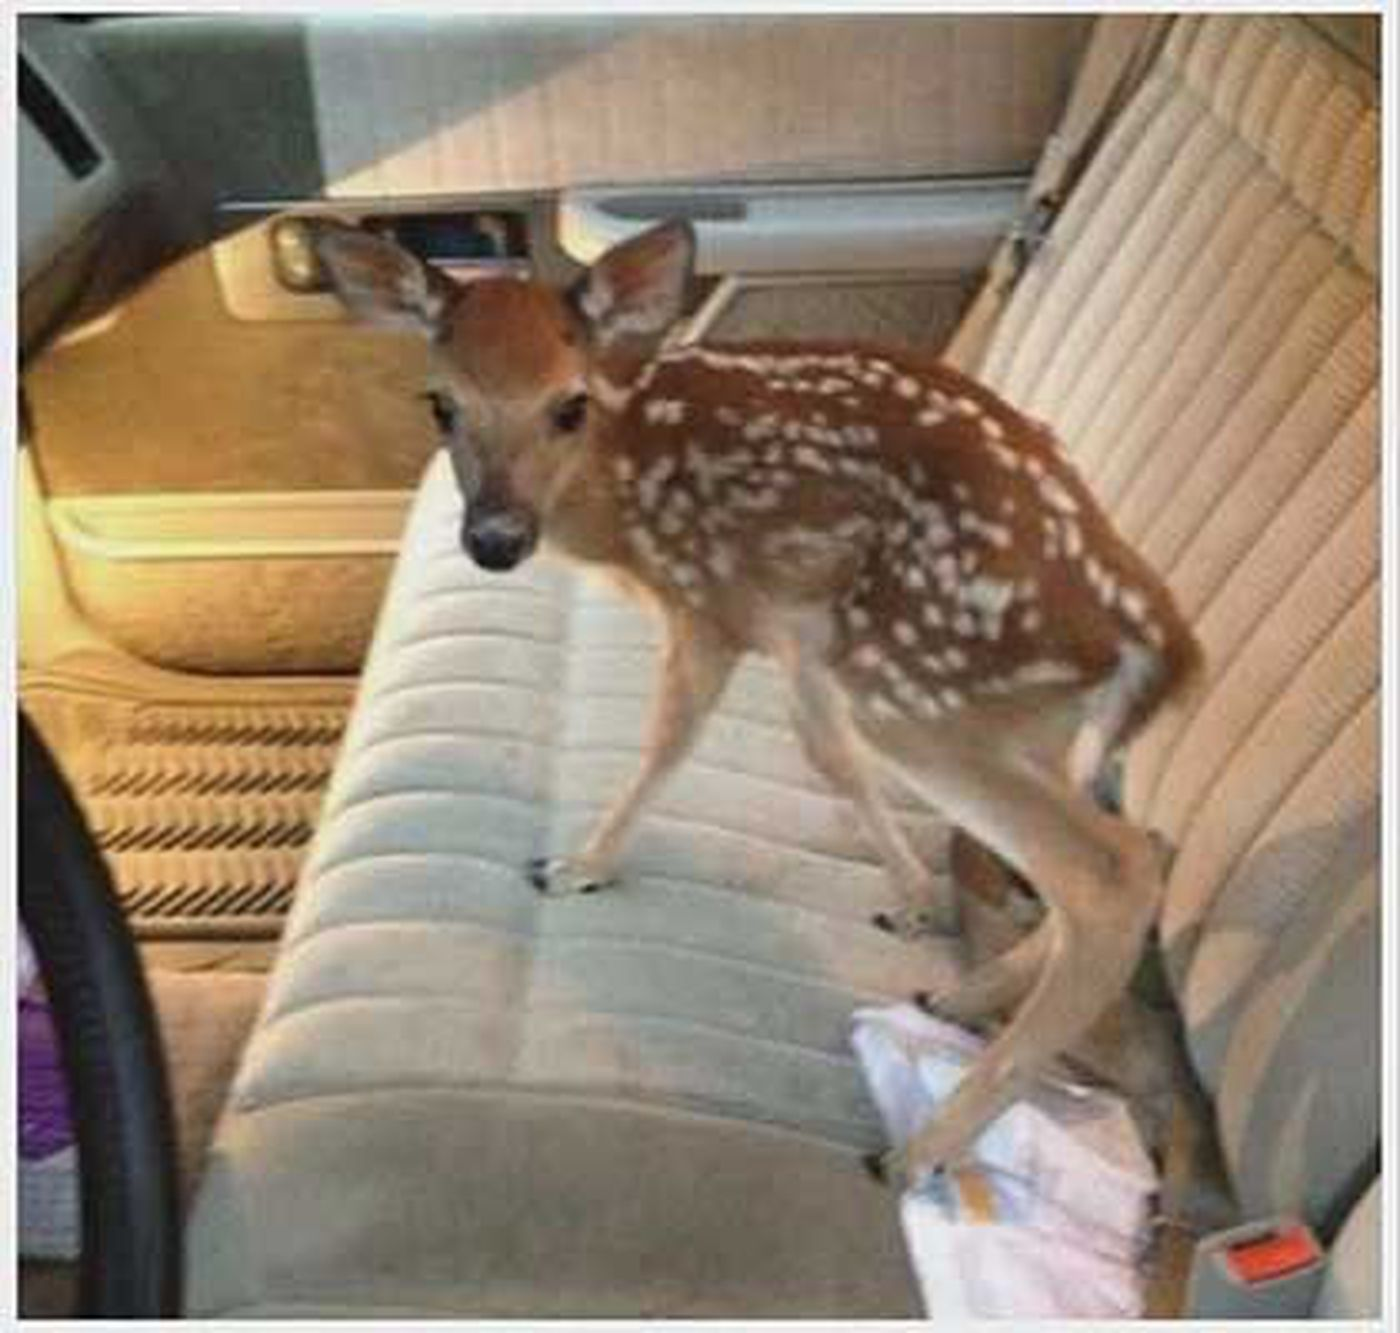 Man puts deer on leash, upsets Kentucky wildlife officials